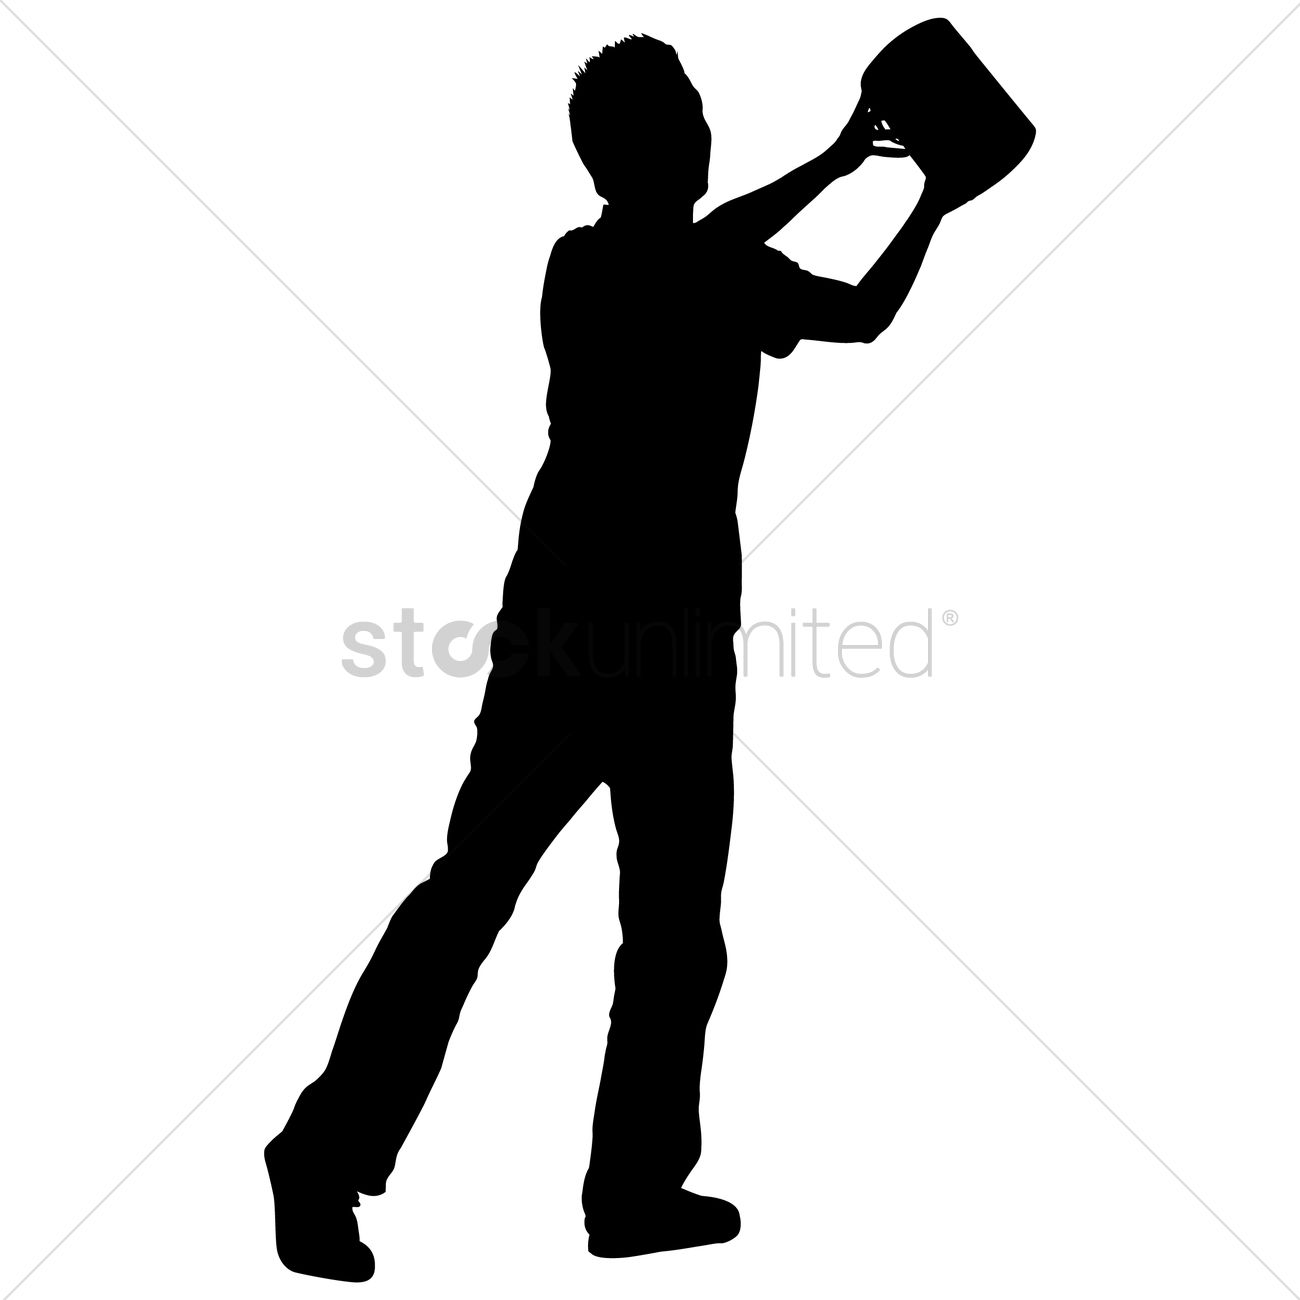 1300x1300 Silhouette Of A Man Holding Paint Bucket Vector Image